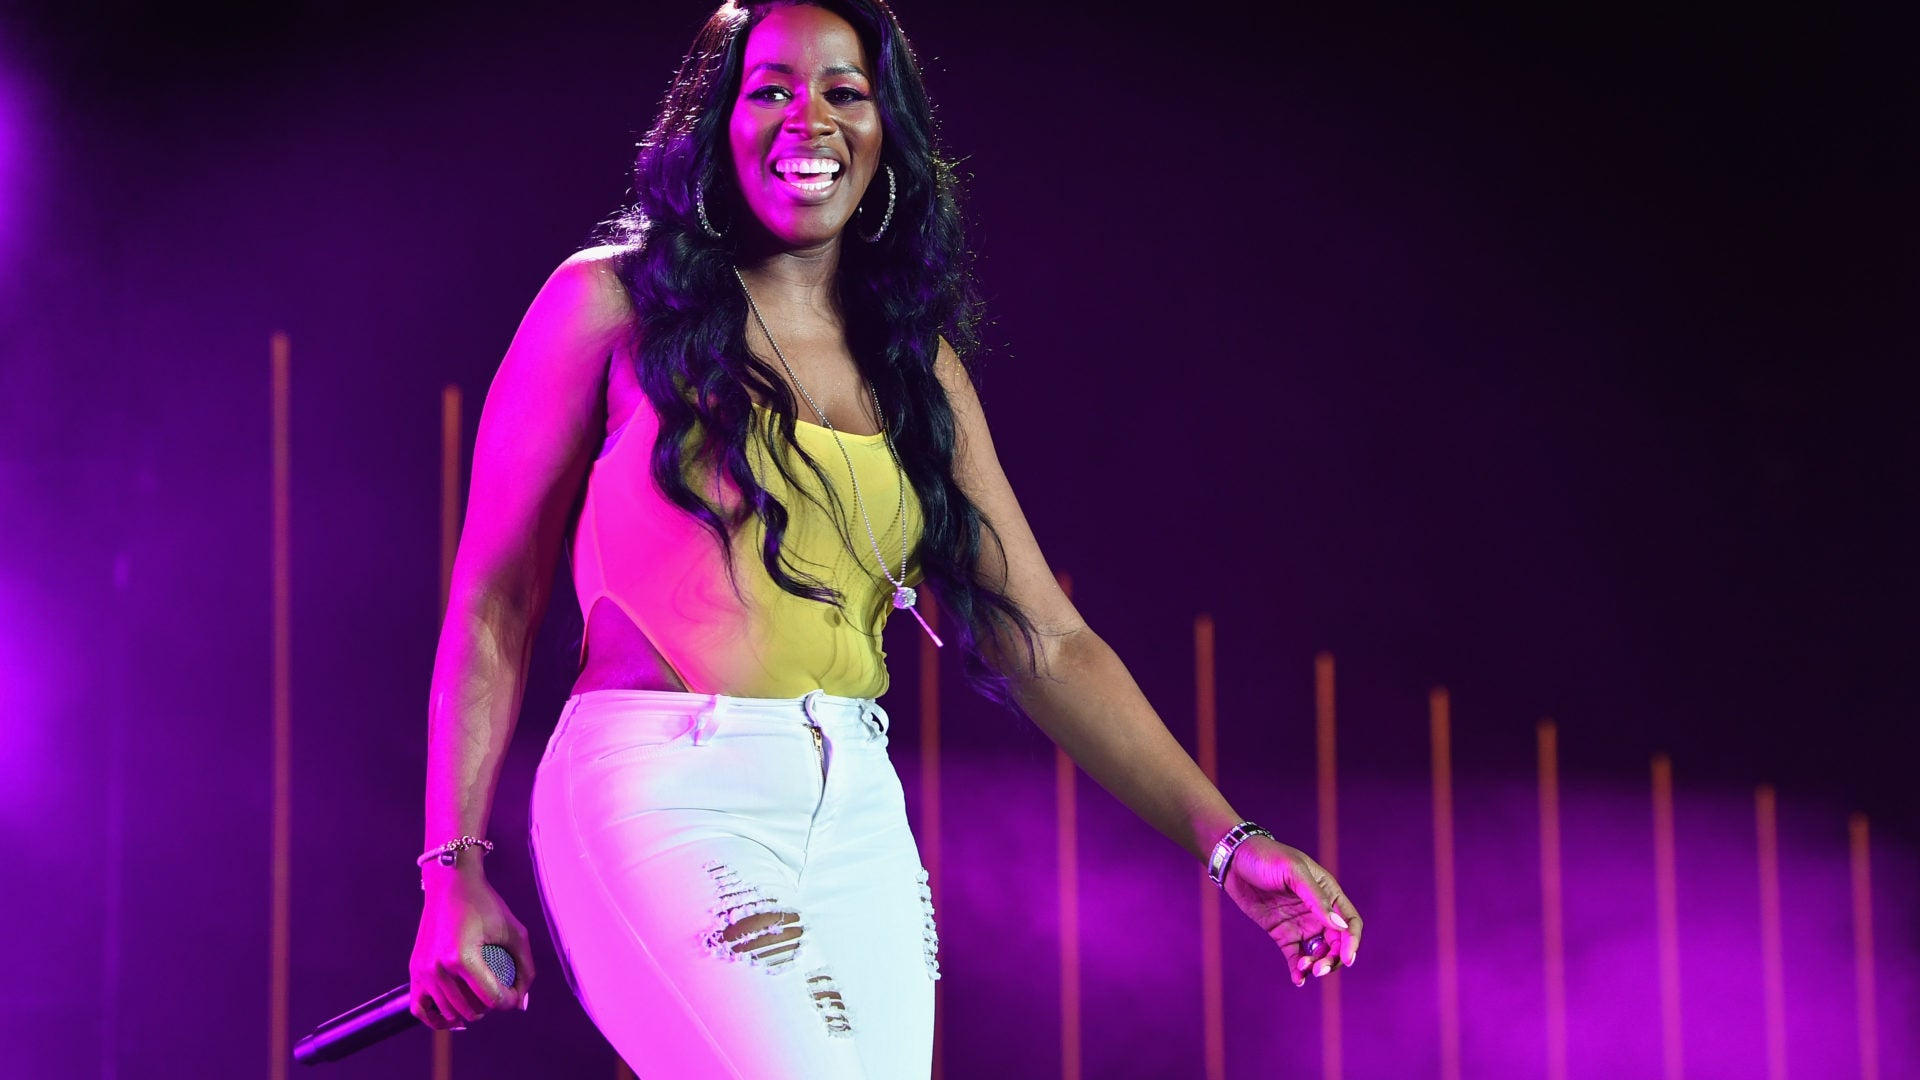 Remy Ma Gets Backlash After Making Controversial Statements About Bill Cosby's Accusers